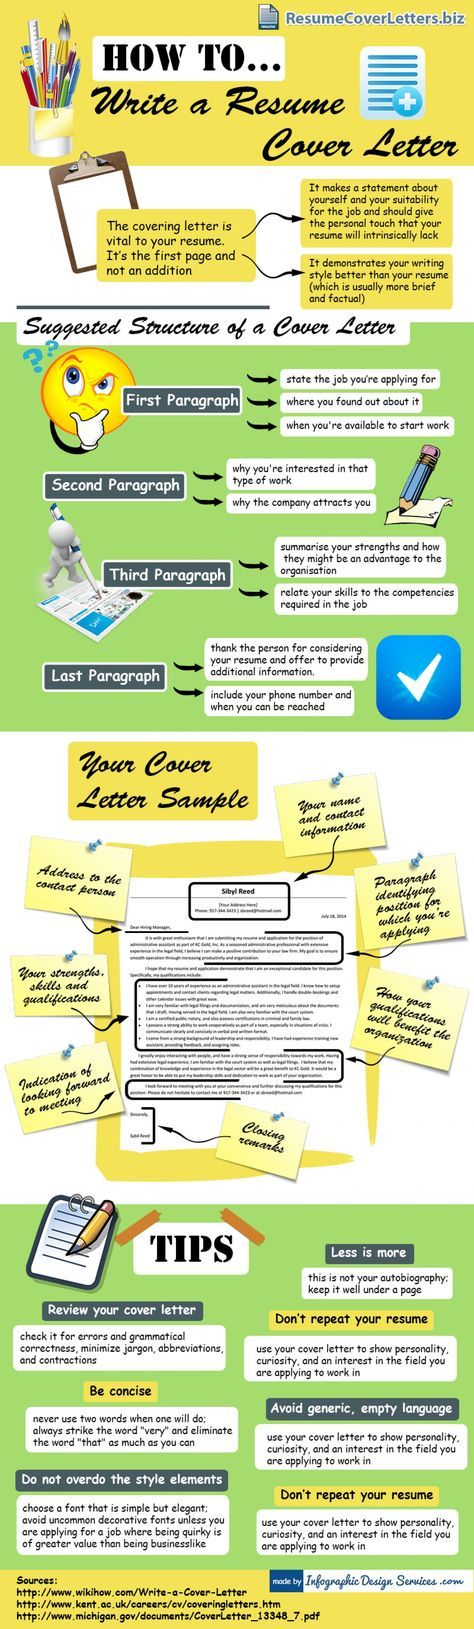 Best 20+ Resume writing tips ideas on Pinterest Cv writing tips - writing resumes and cover letters